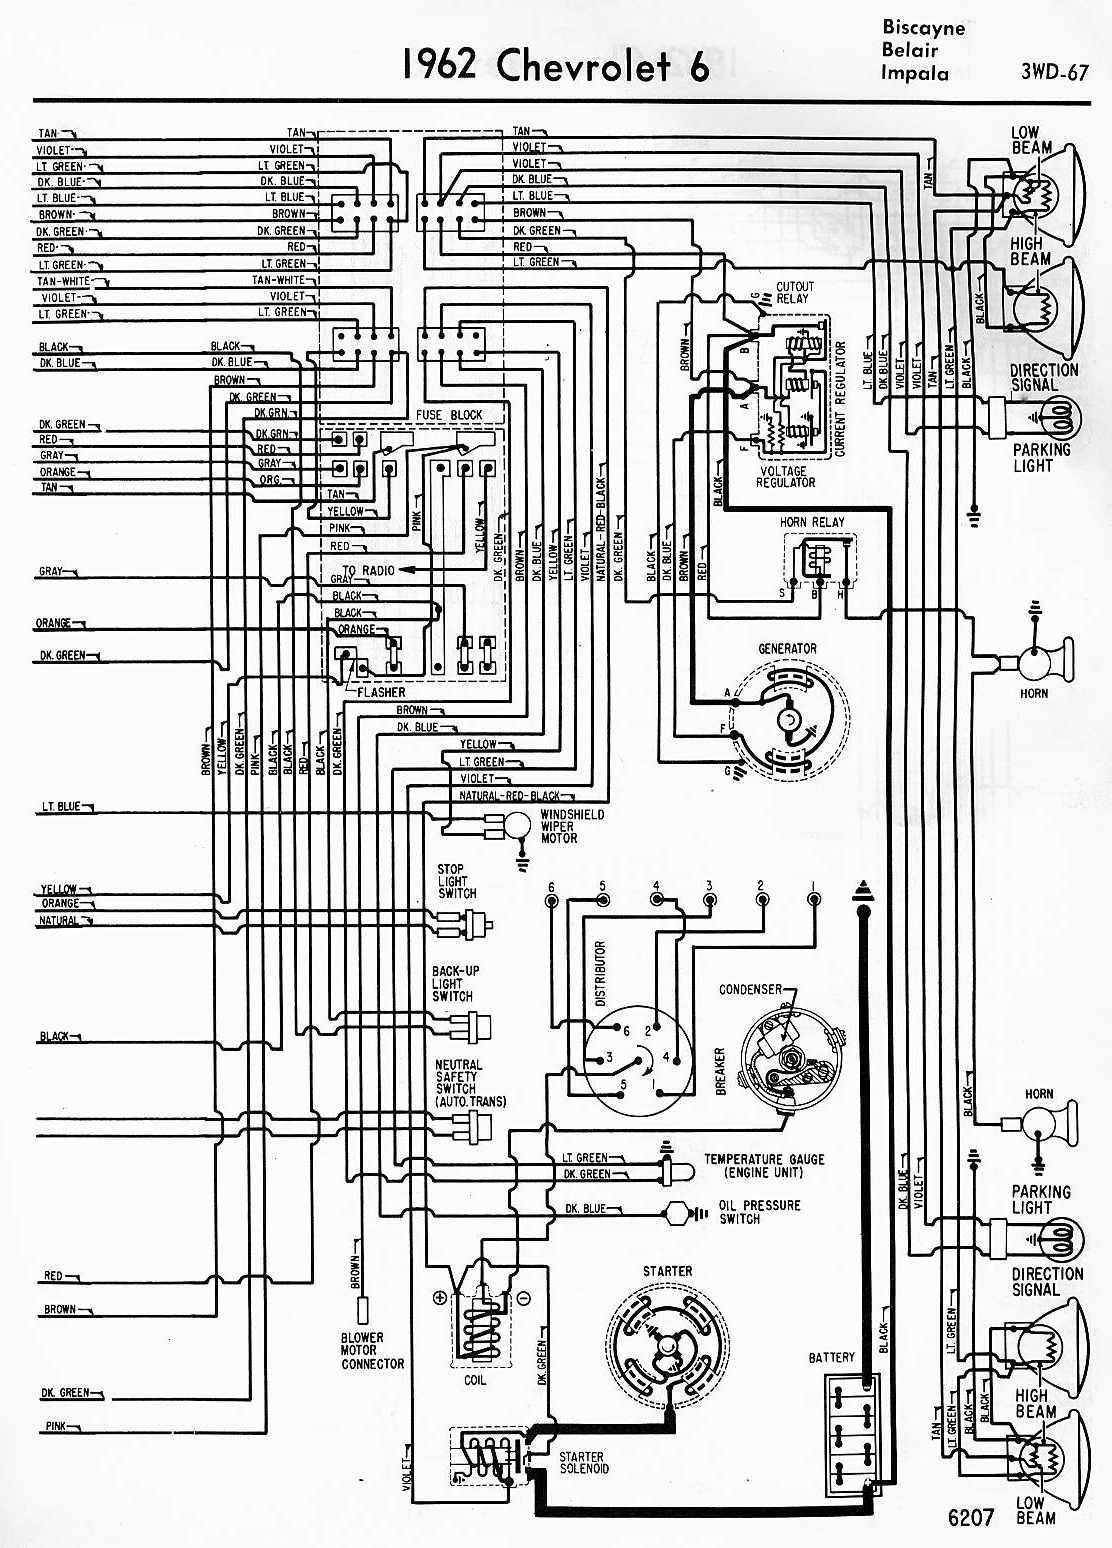 67 impala convertible wiring diagram wiring library column diagram furthermore 2000 cadillac deville wiring diagrams [ 1112 x 1548 Pixel ]